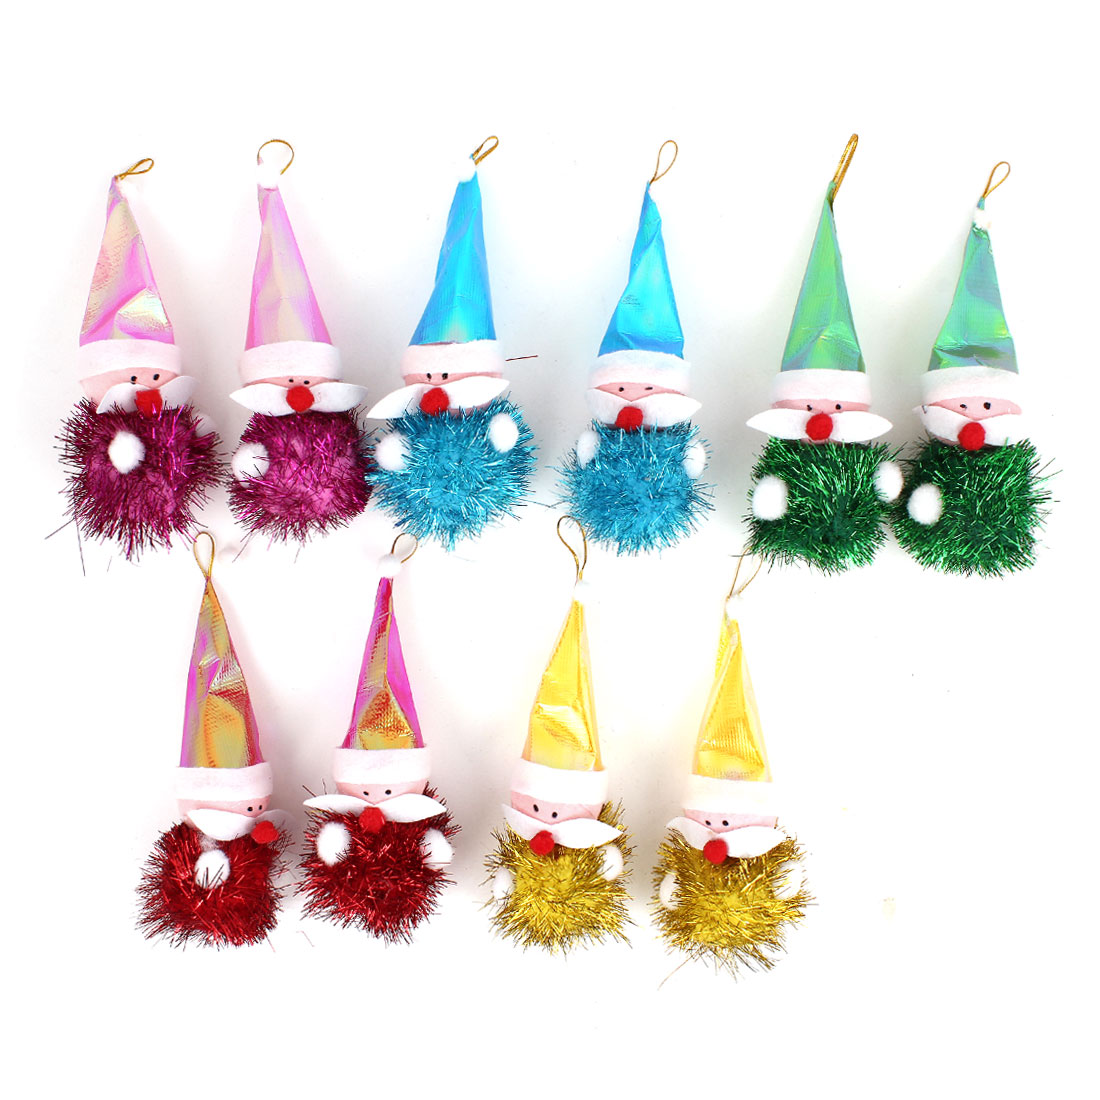 Long Pointed Cap Accent Xmas Santa Claus Pendant Colorful 10pcs for Christmas Tree Hanging Decor